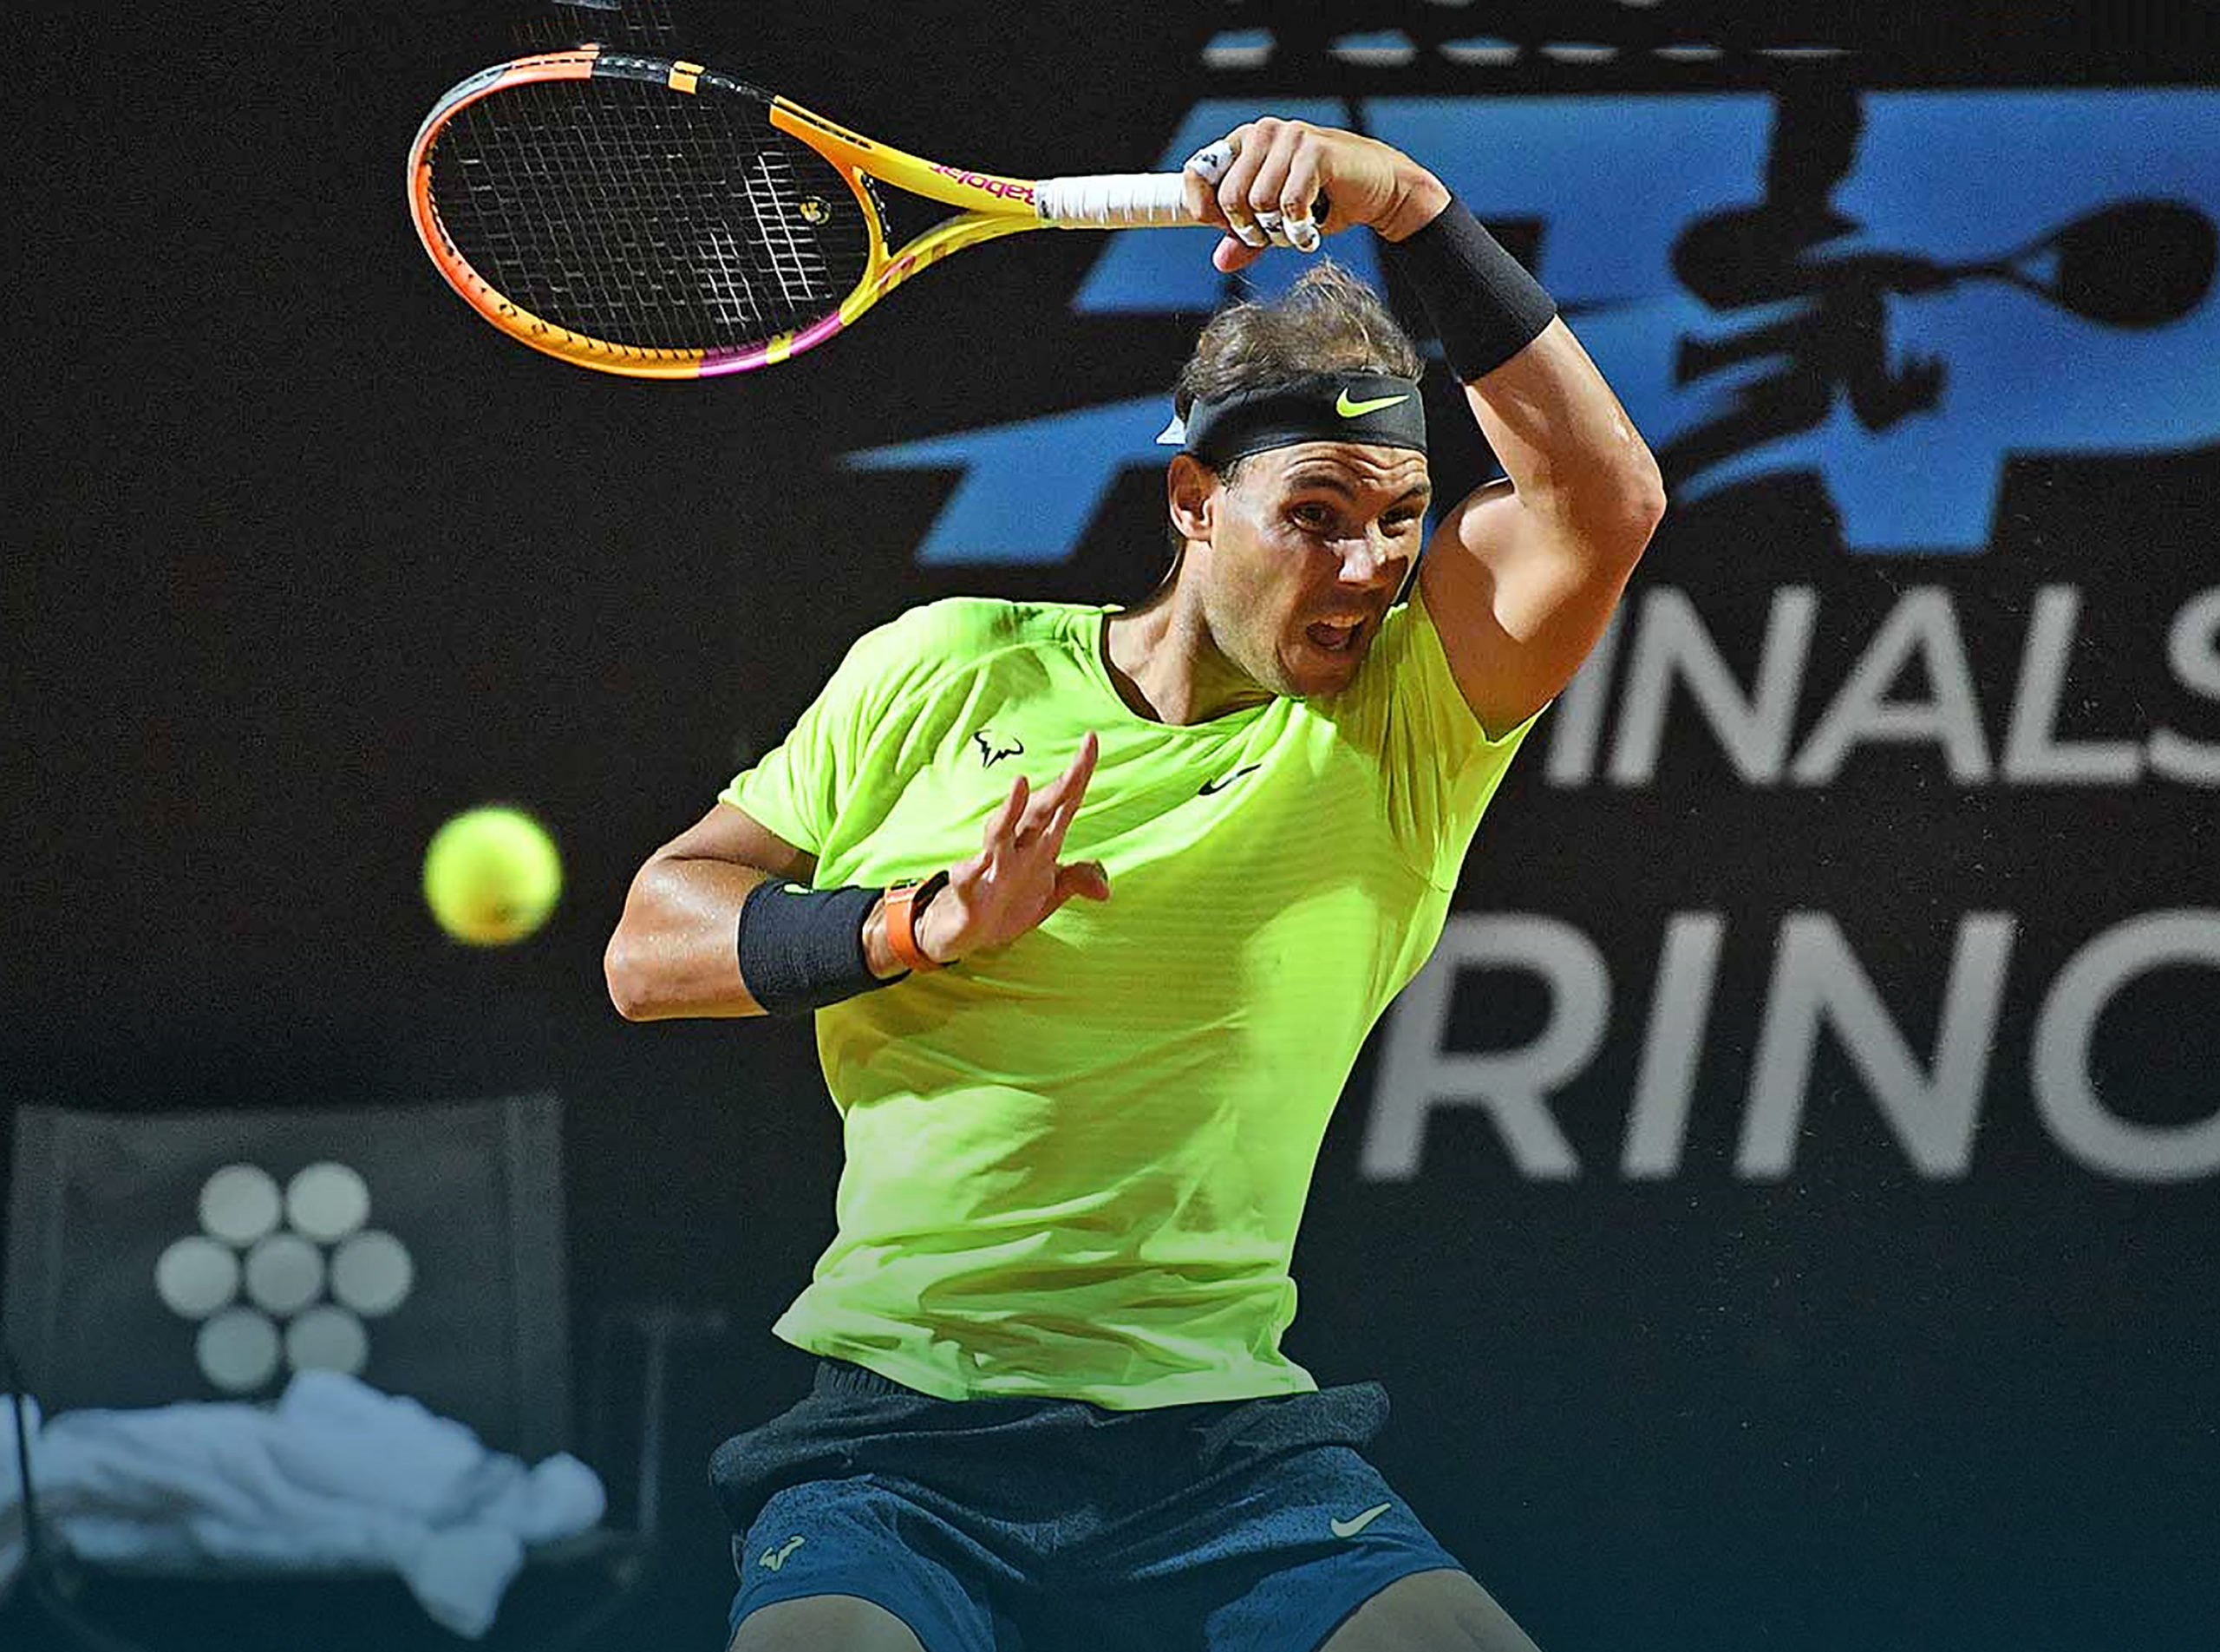 Rafa's New Racquet Paint | Tennisnerd.net - What is Rafa's racquet?